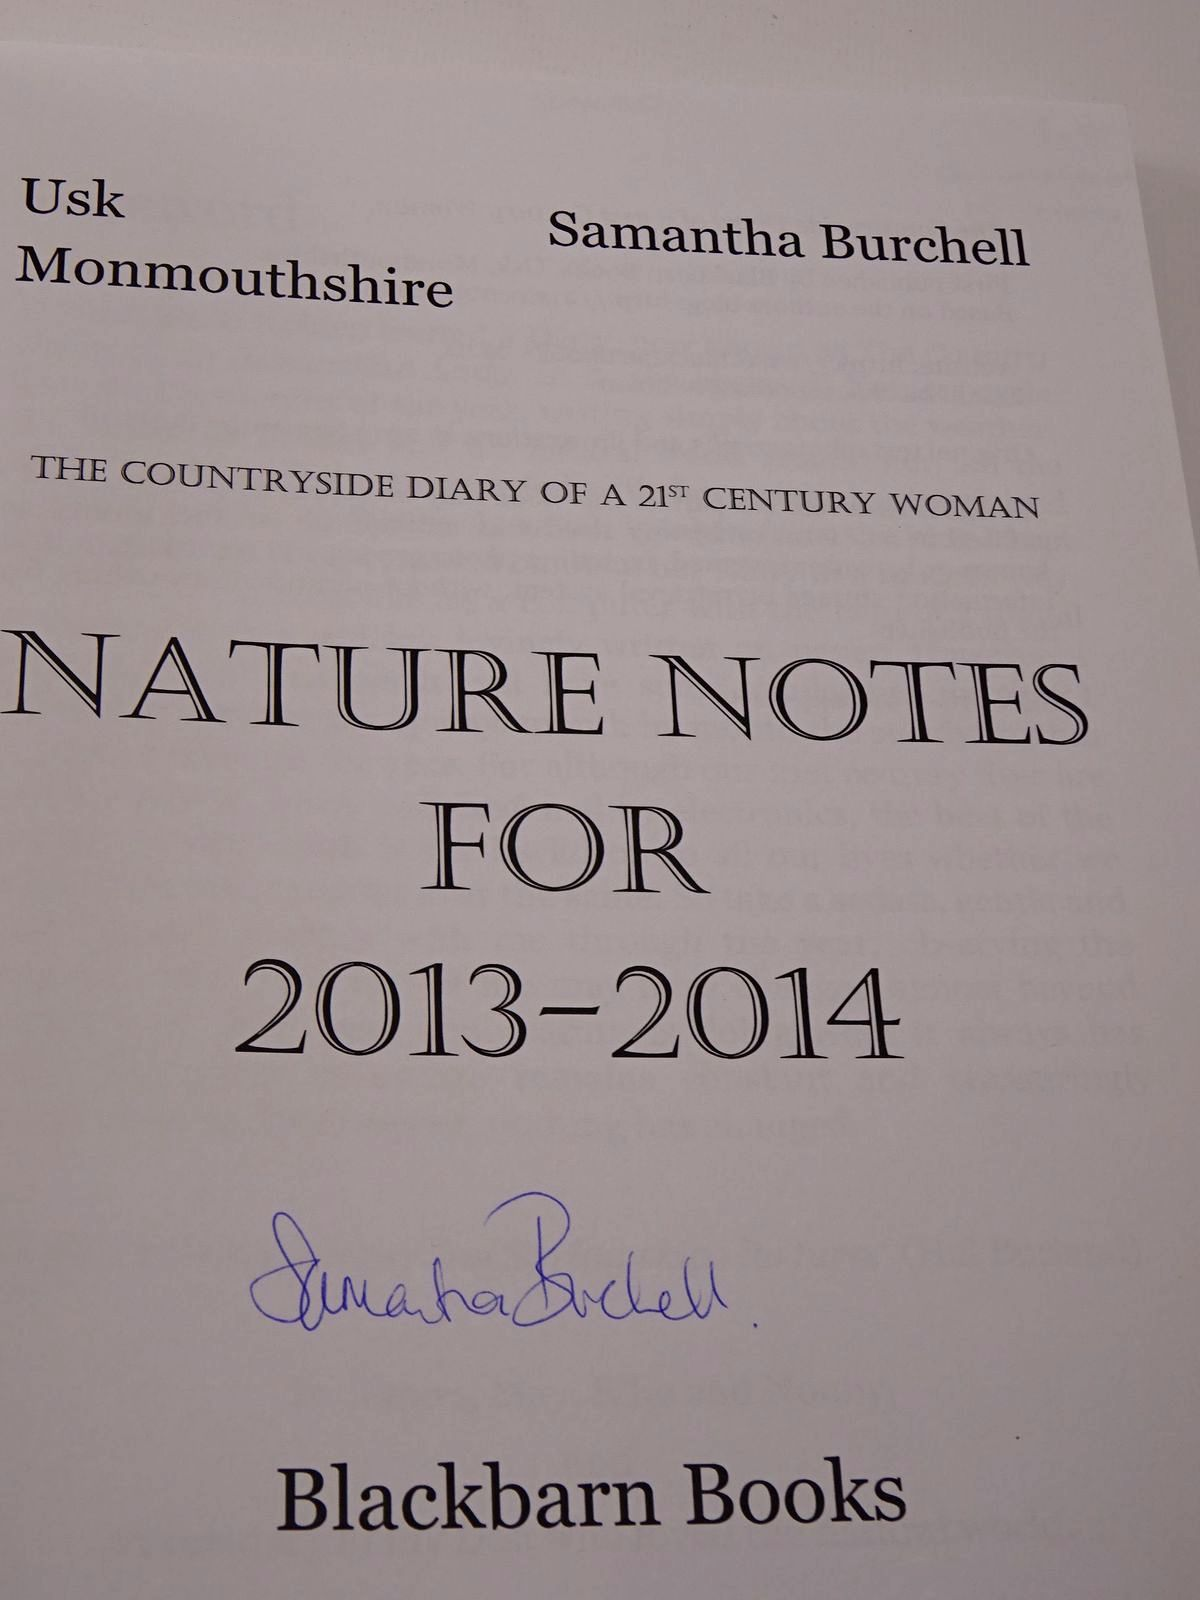 Photo of THE COUNTRYSIDE DIARY OF A 21ST CENTURY WOMAN: NATURE NOTES FOR 2013-2014 written by Burchell, Samantha illustrated by Burchell, Samantha published by Blackbarn Books (STOCK CODE: 1817384)  for sale by Stella & Rose's Books